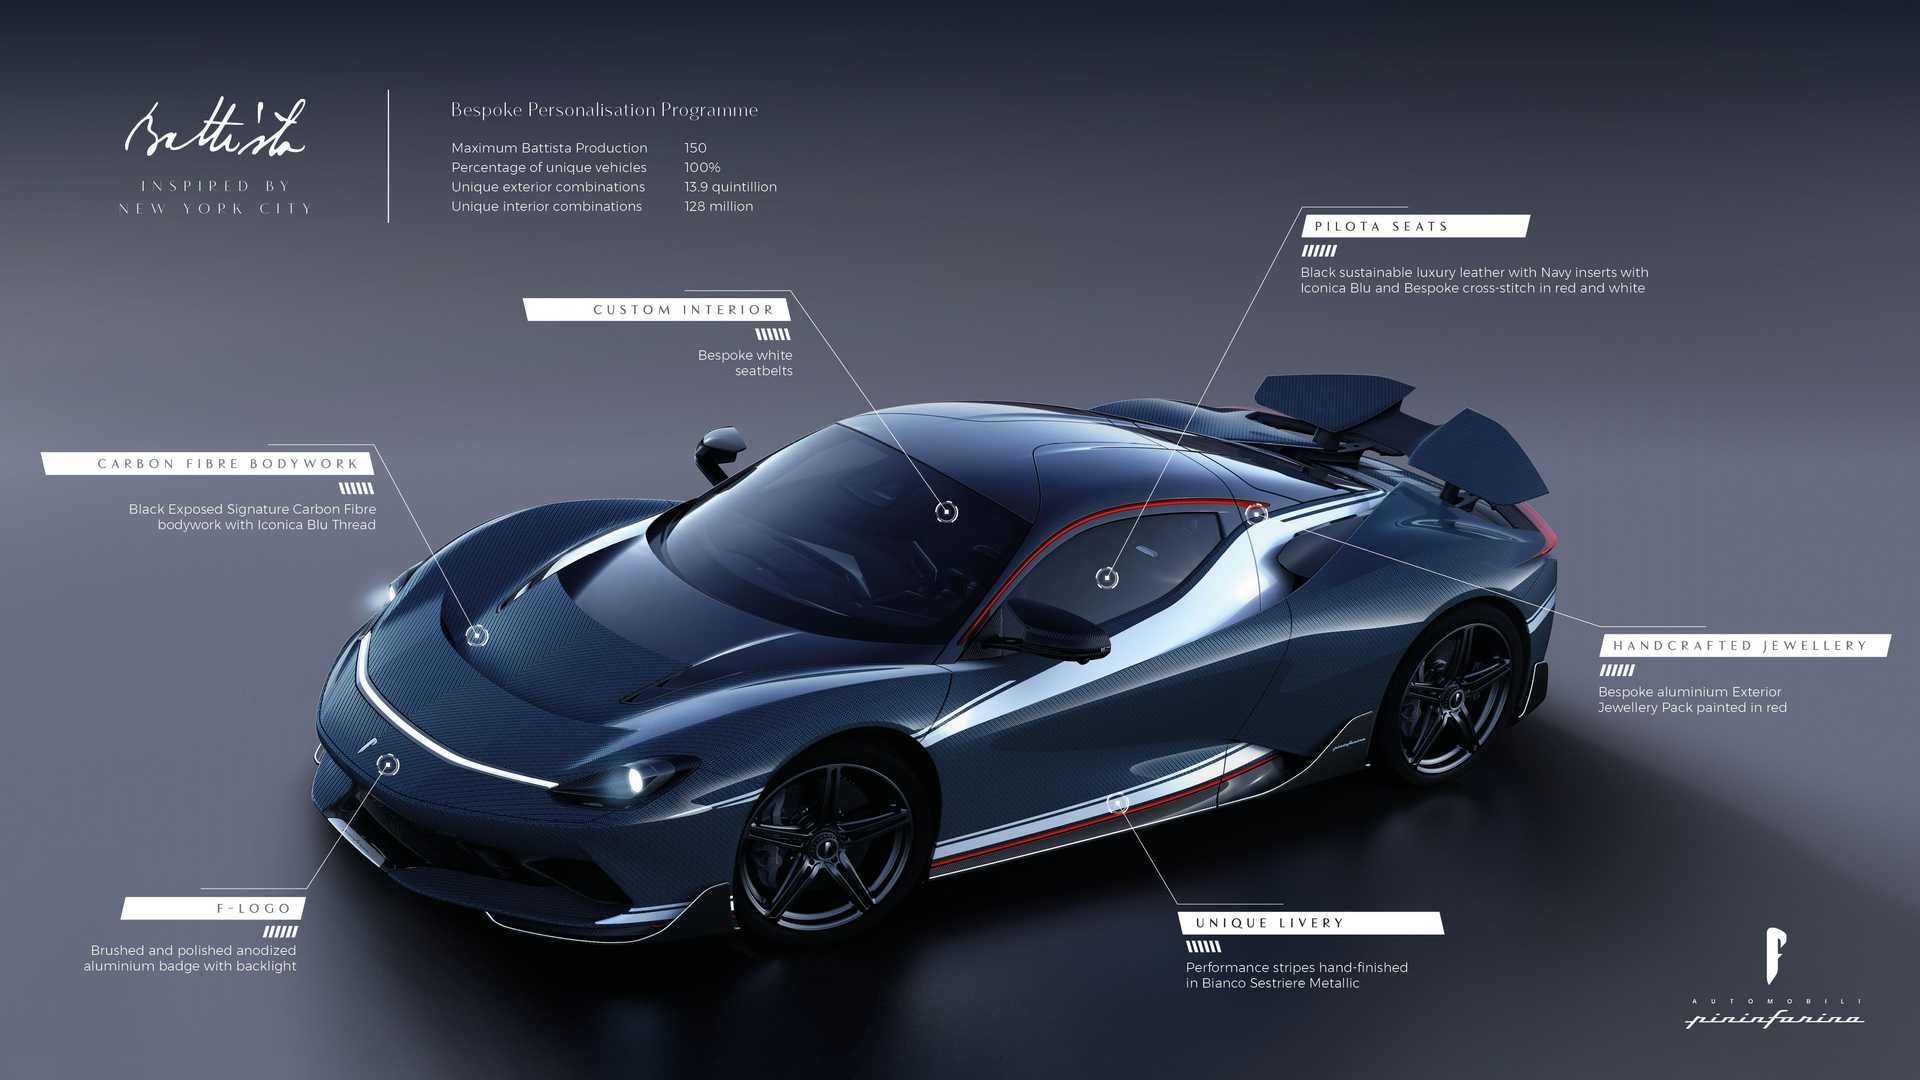 Once a coachbuilder and now a budding carmaker, Pininfarina plans on producing 150 Battista hypercars, offering them in countless combinations.